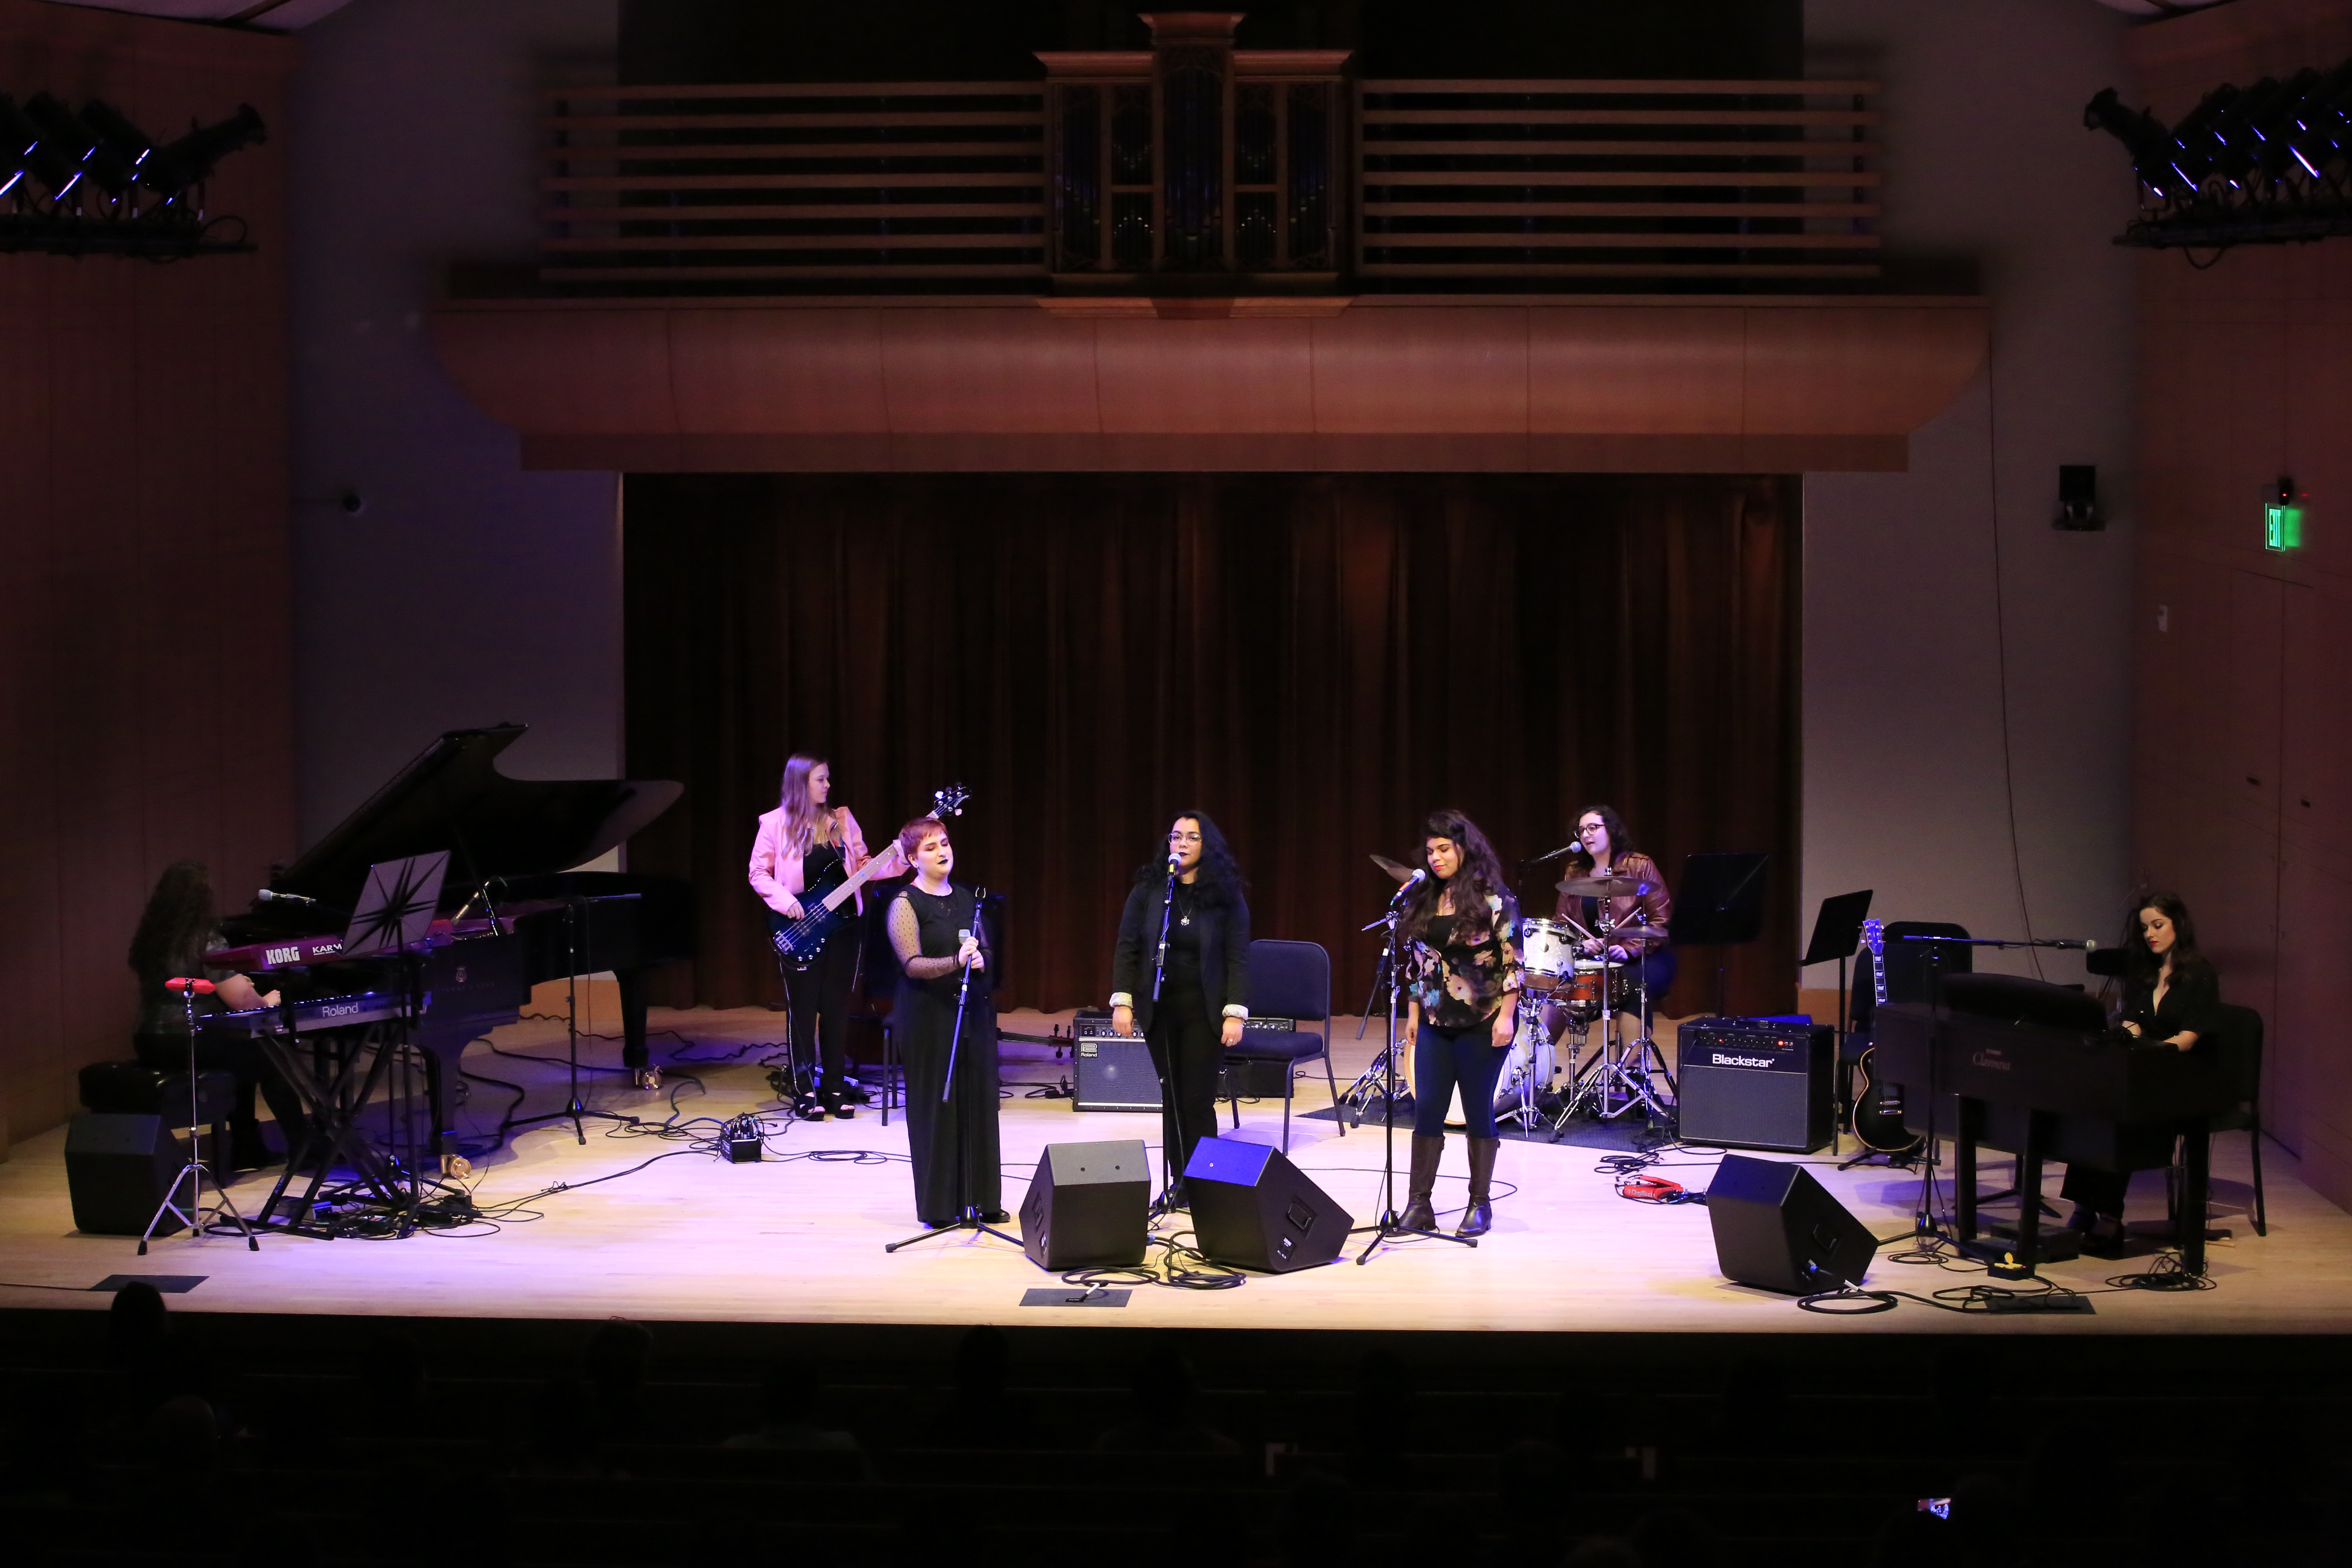 Band of women playing on stage with three singers front and center on Schroeder Hall stage